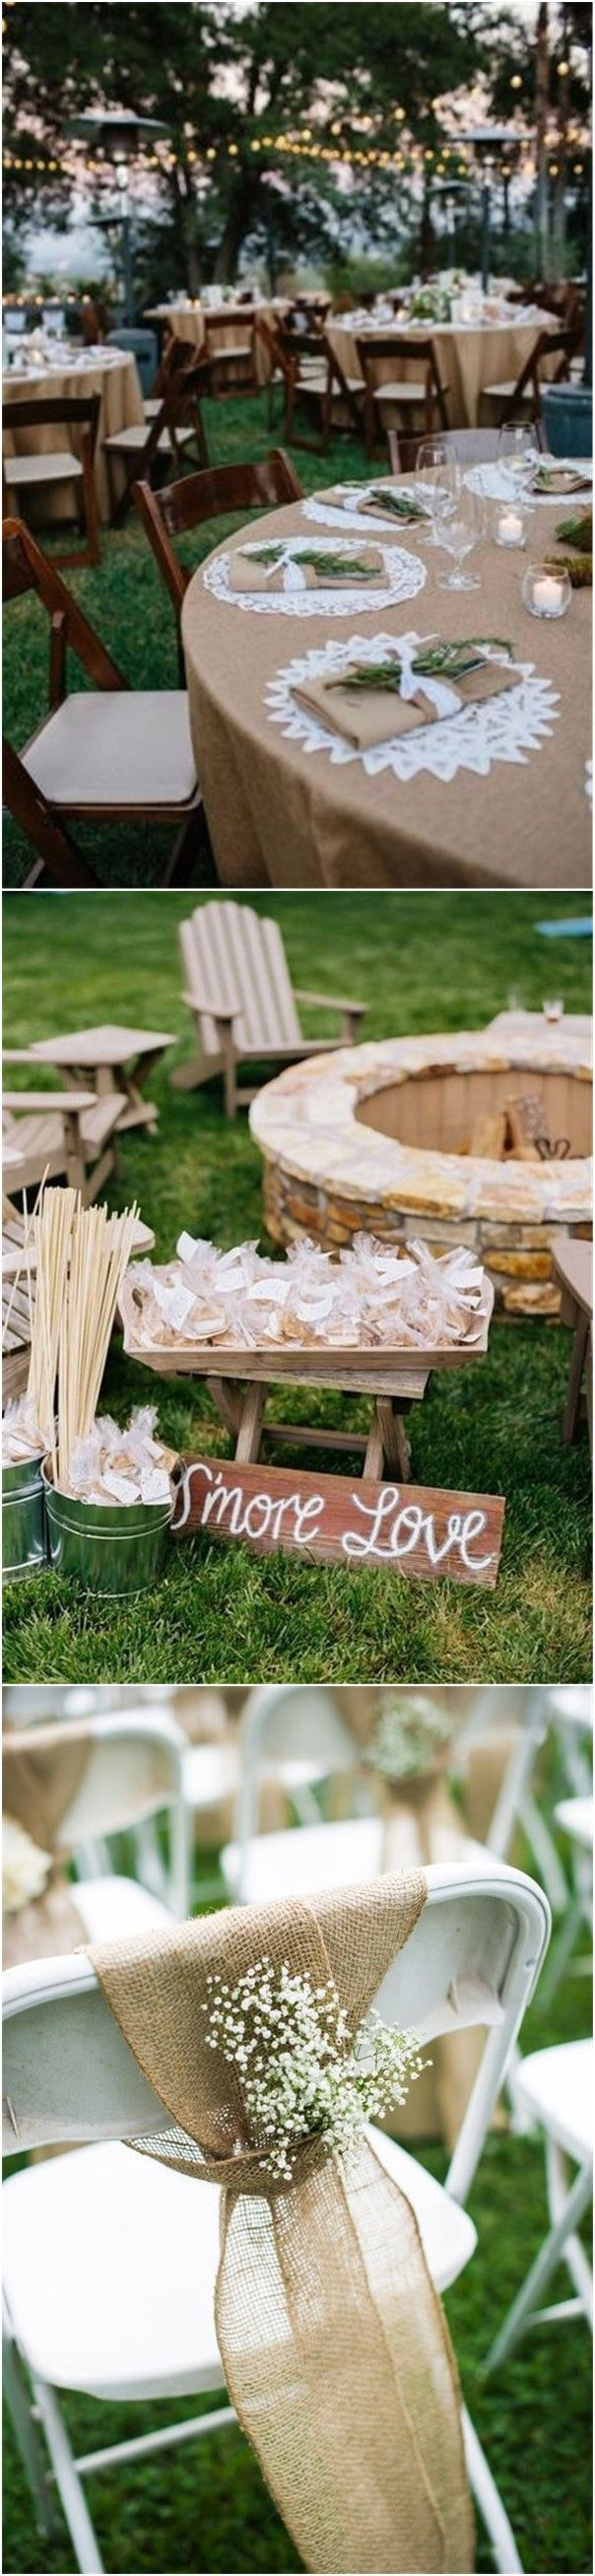 Wedding Decorations 22 Rustic Backyard Decoration Ideas On A Budget More